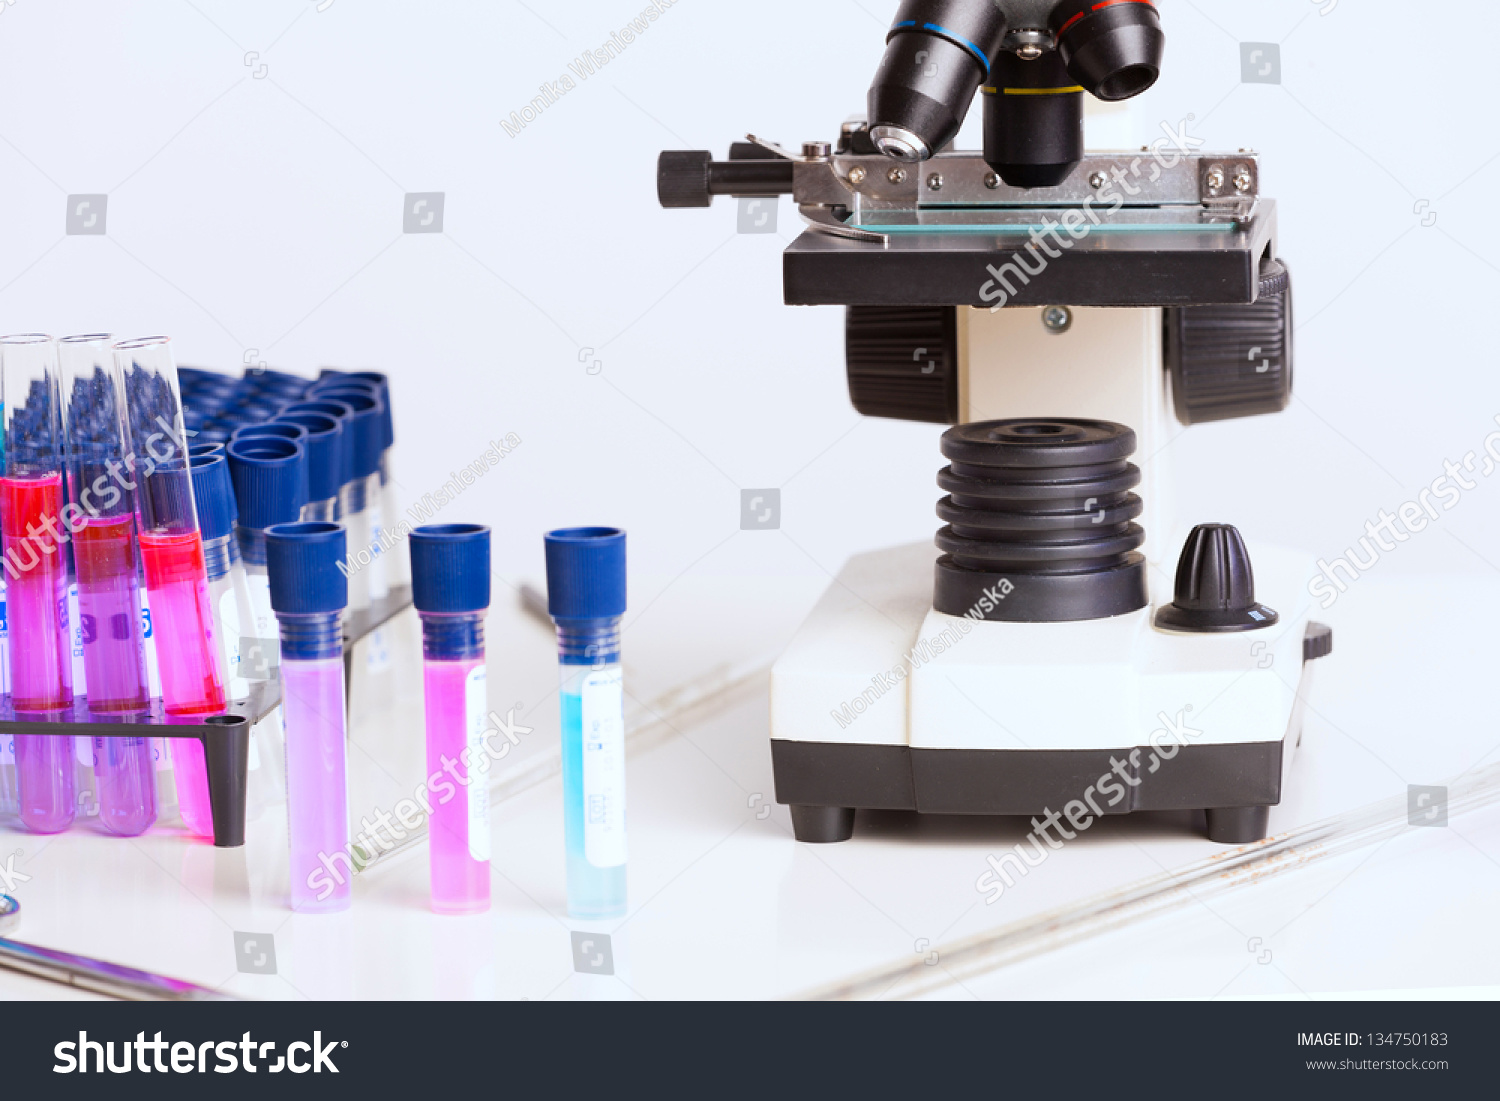 Laboratory Equipment Microscope Test Tubes Filled With Colored Fluid Chemical Flasks Stock